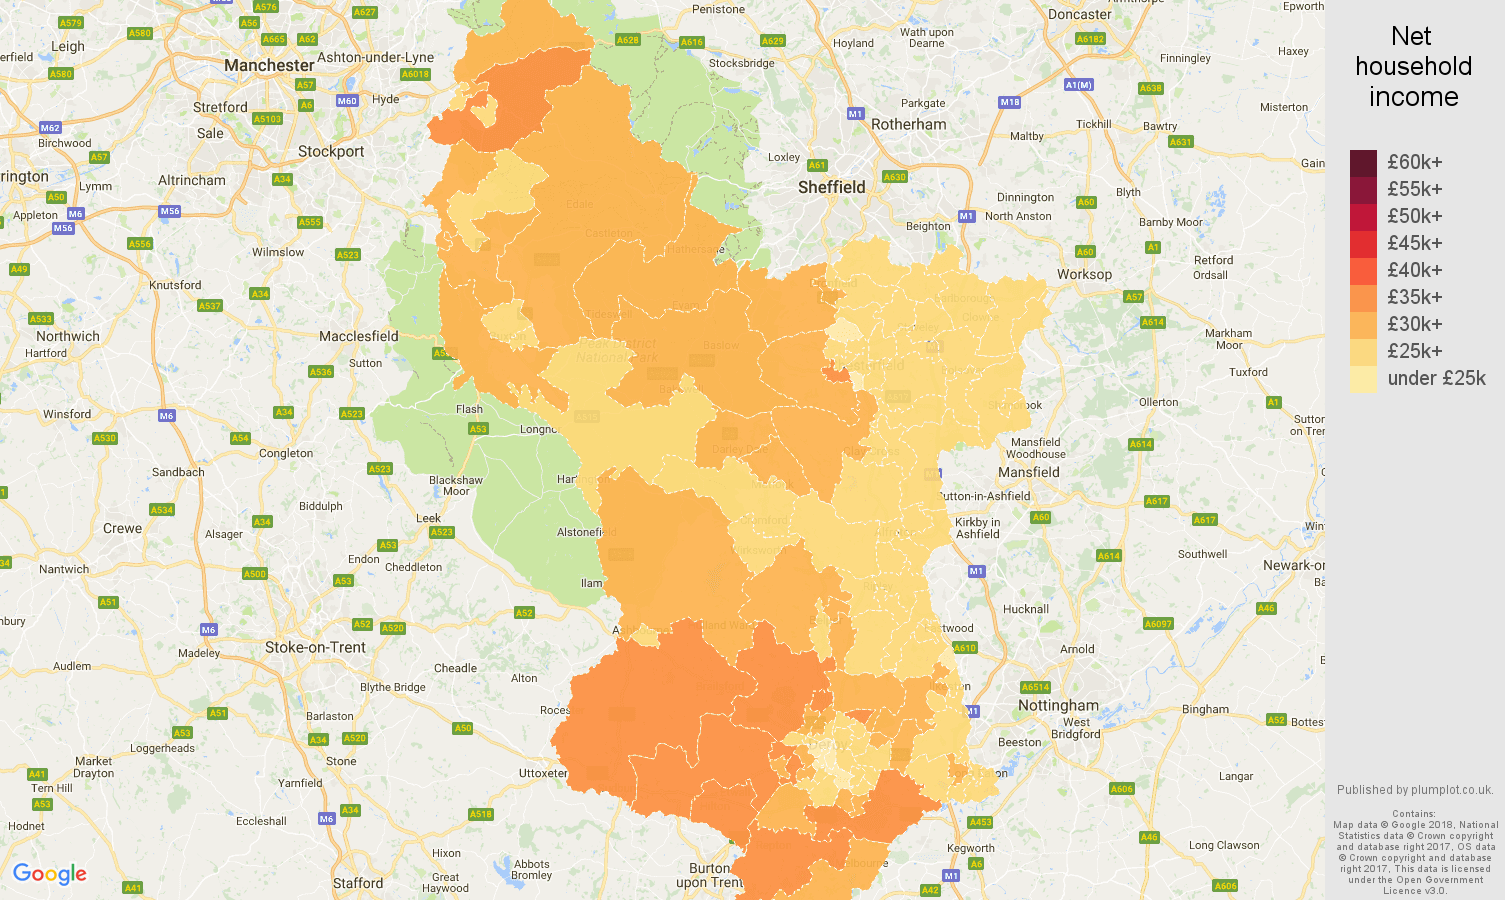 Derbyshire net household income map